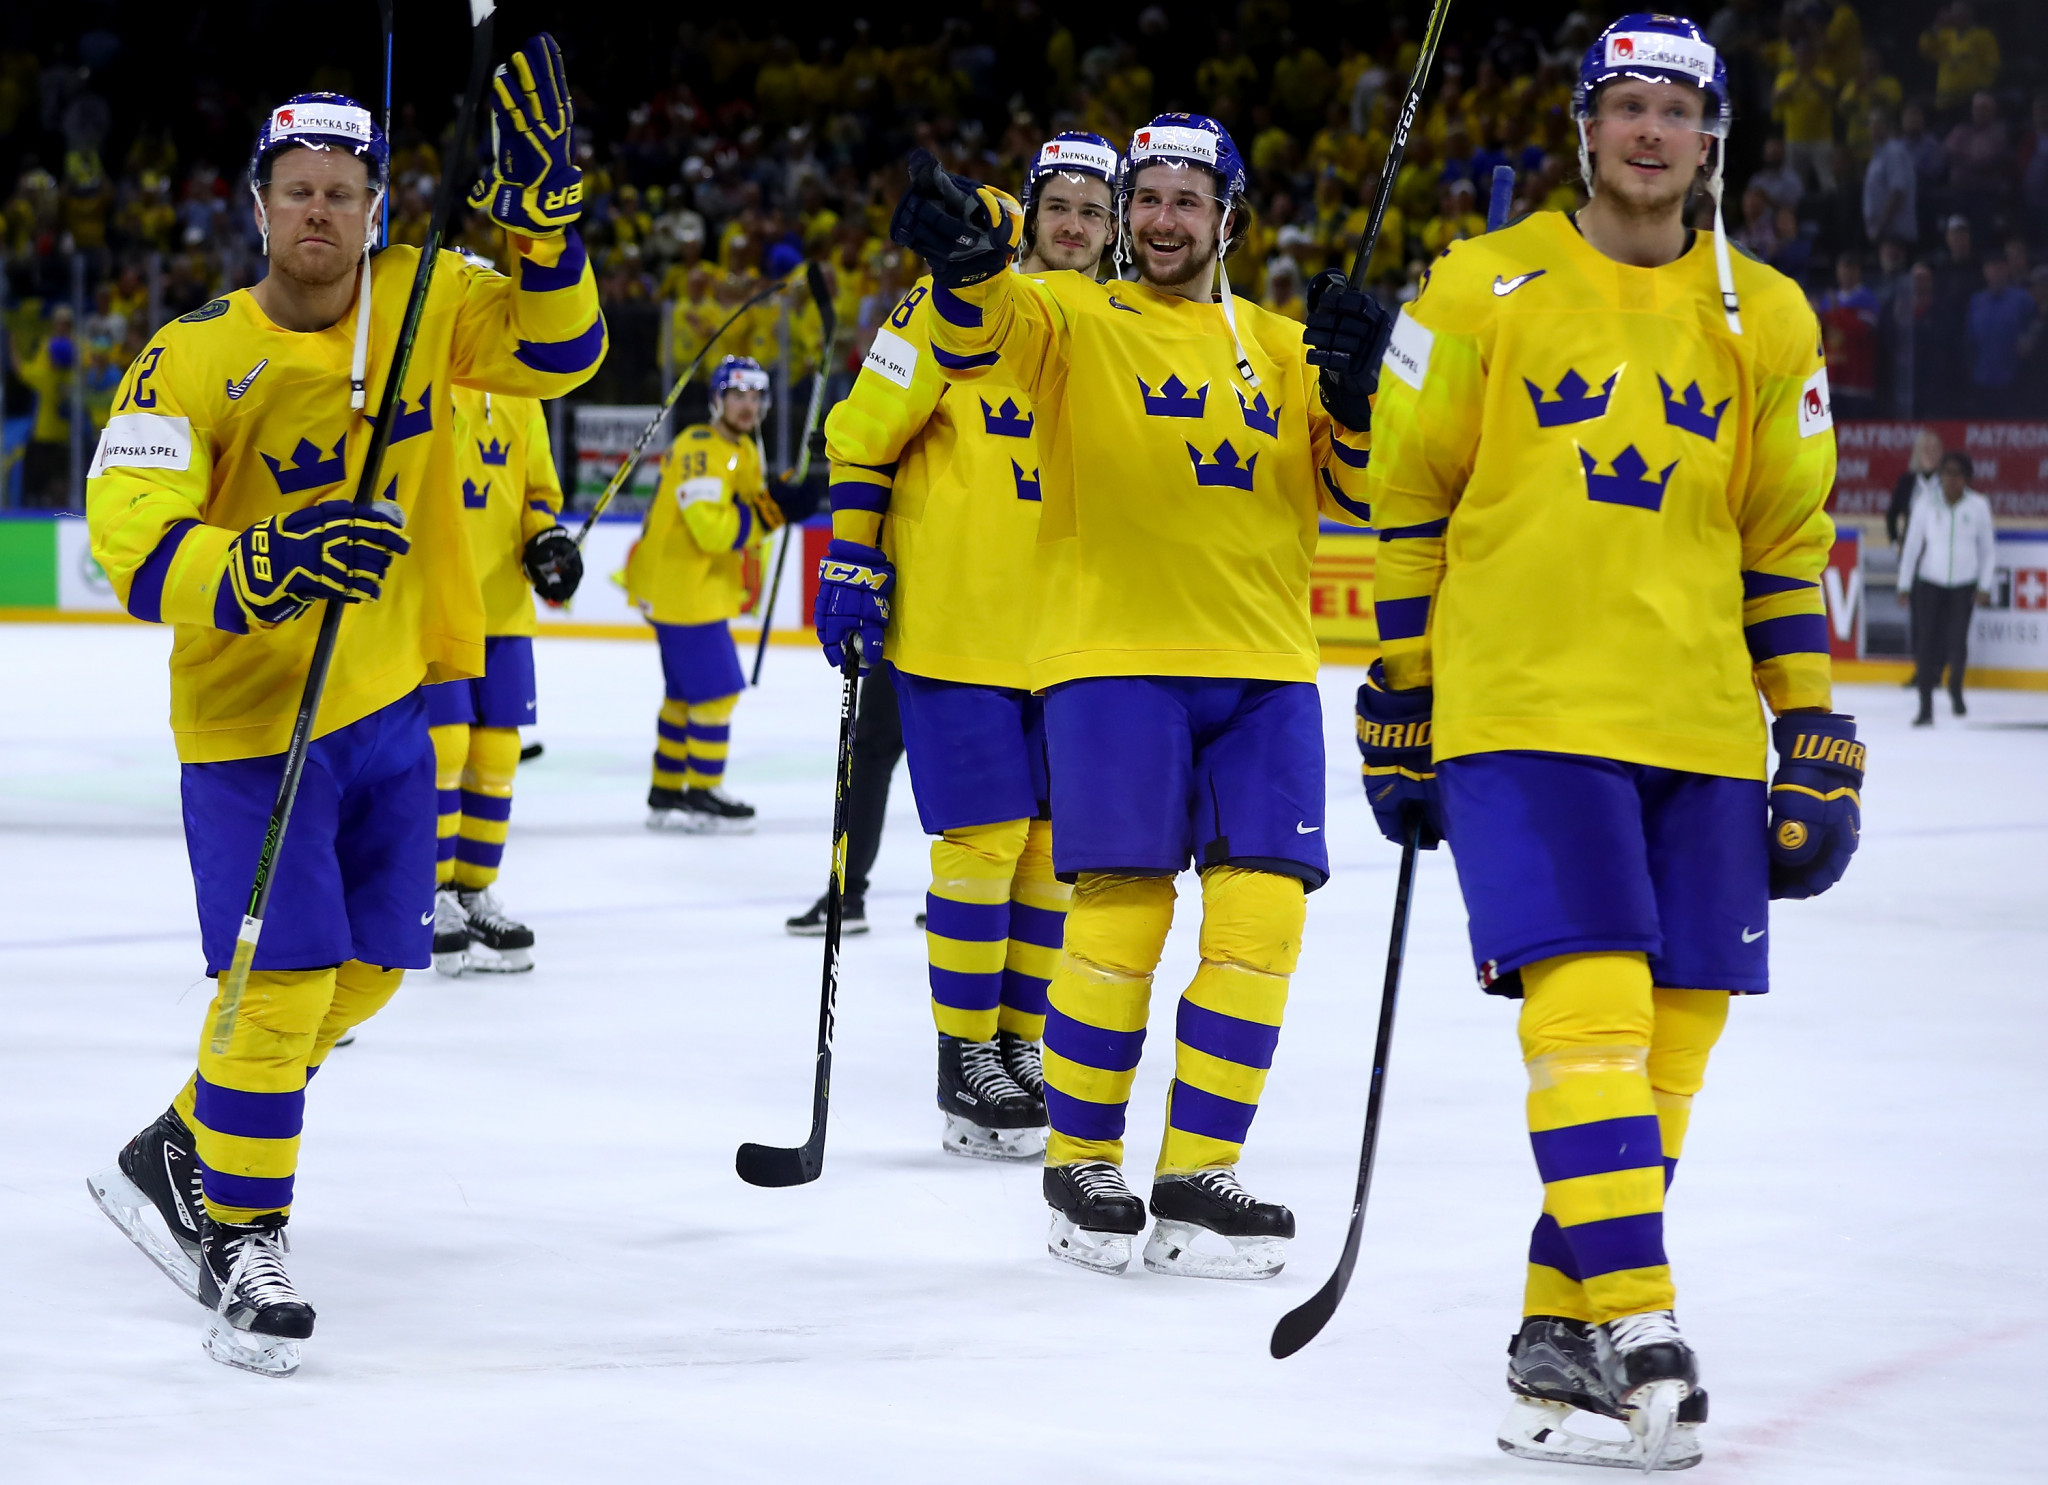 Sweden booked their place in the IIHF World Championship final ©Getty Images